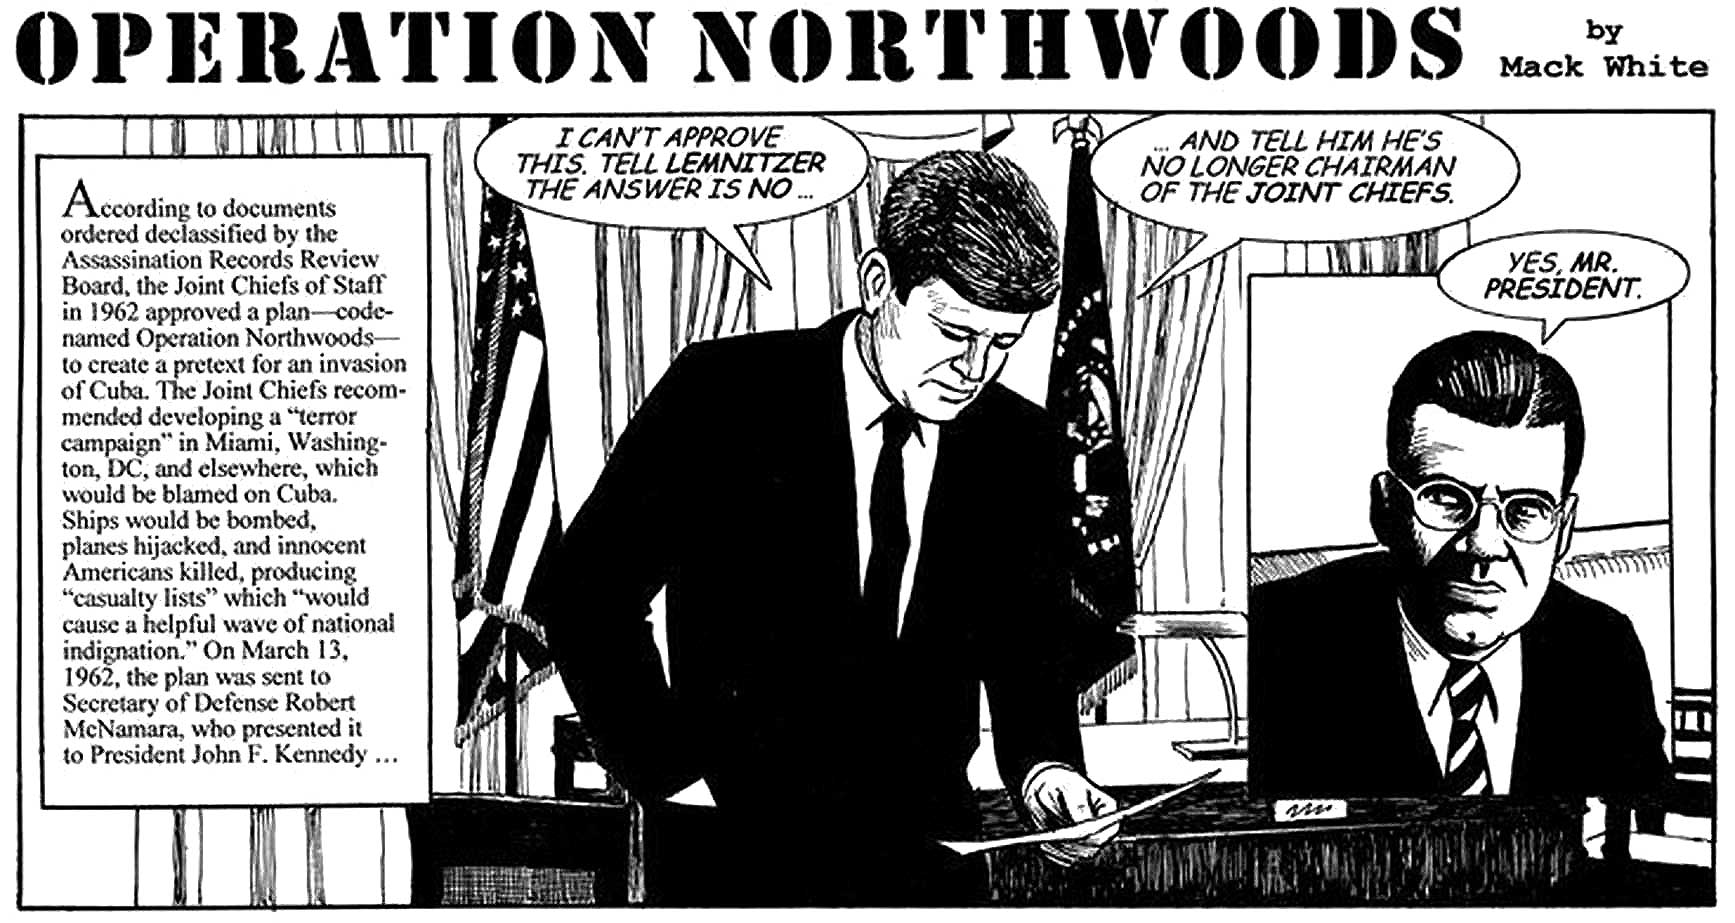 https://i1.wp.com/impiousdigest.com/wp-content/uploads/jfk_northwoods.jpg